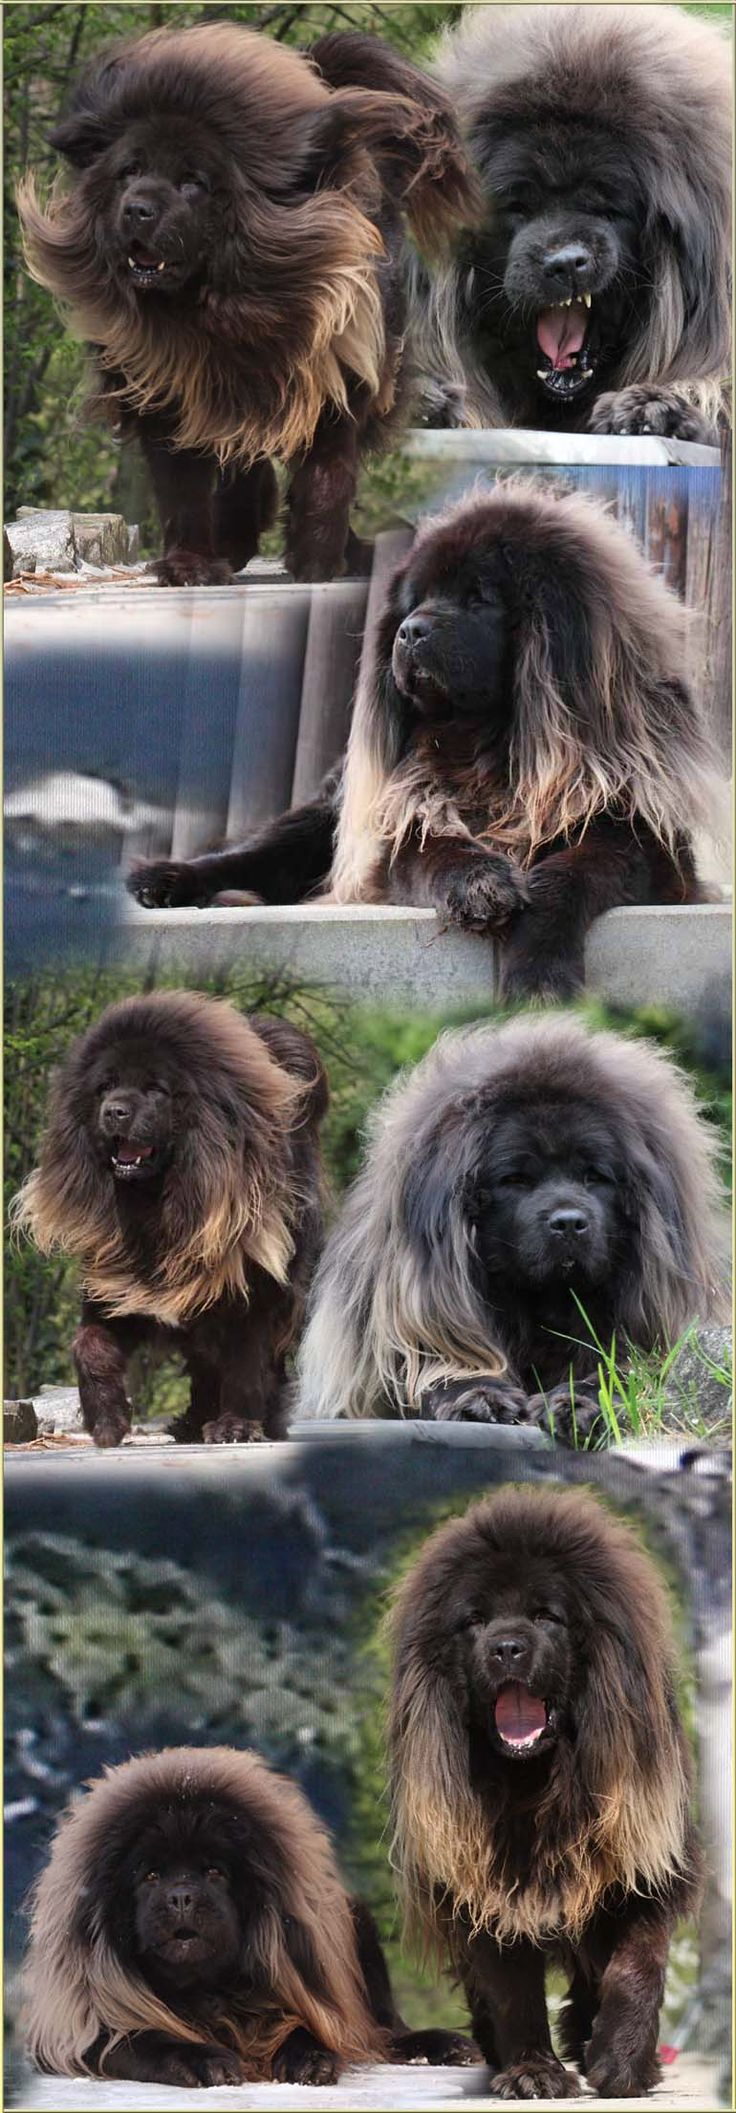 Blackie from Sundari TMs - one of the most gorgeous female tibetan mastiffs I've ever seen!